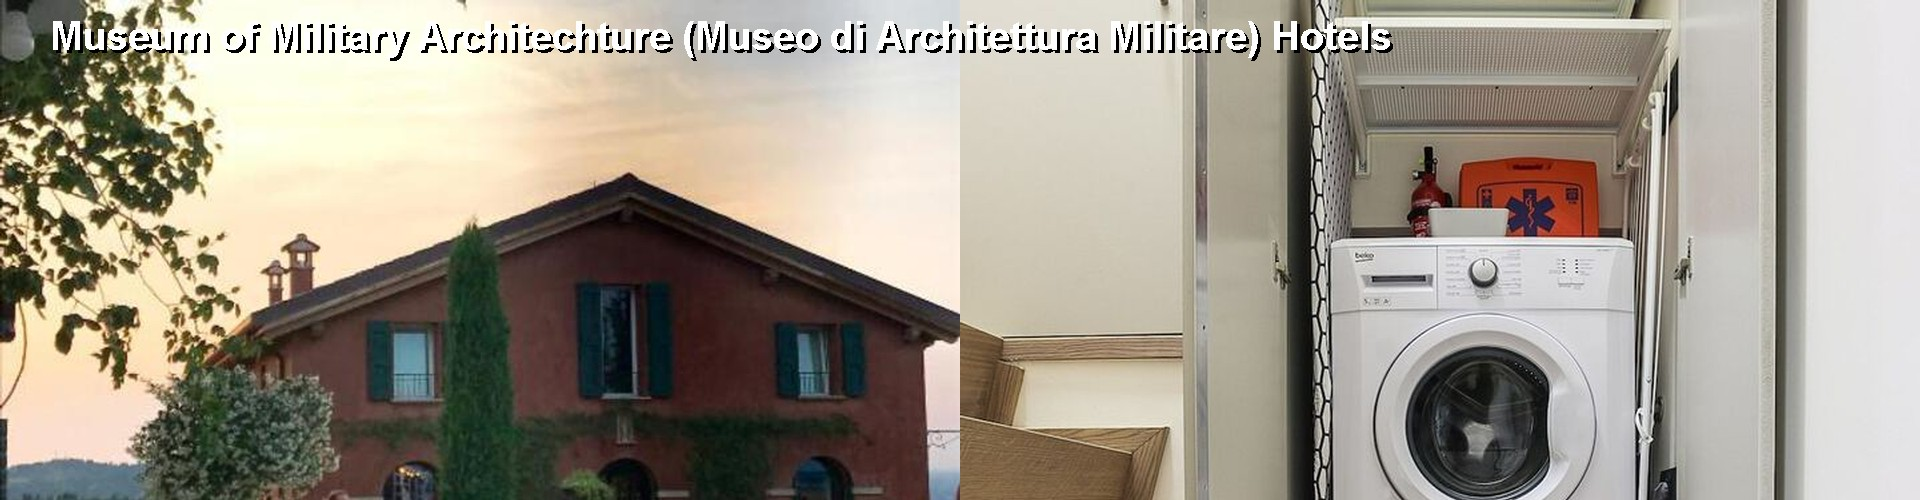 5 Best Hotels near Museum of Military Architechture (Museo di Architettura Militare)